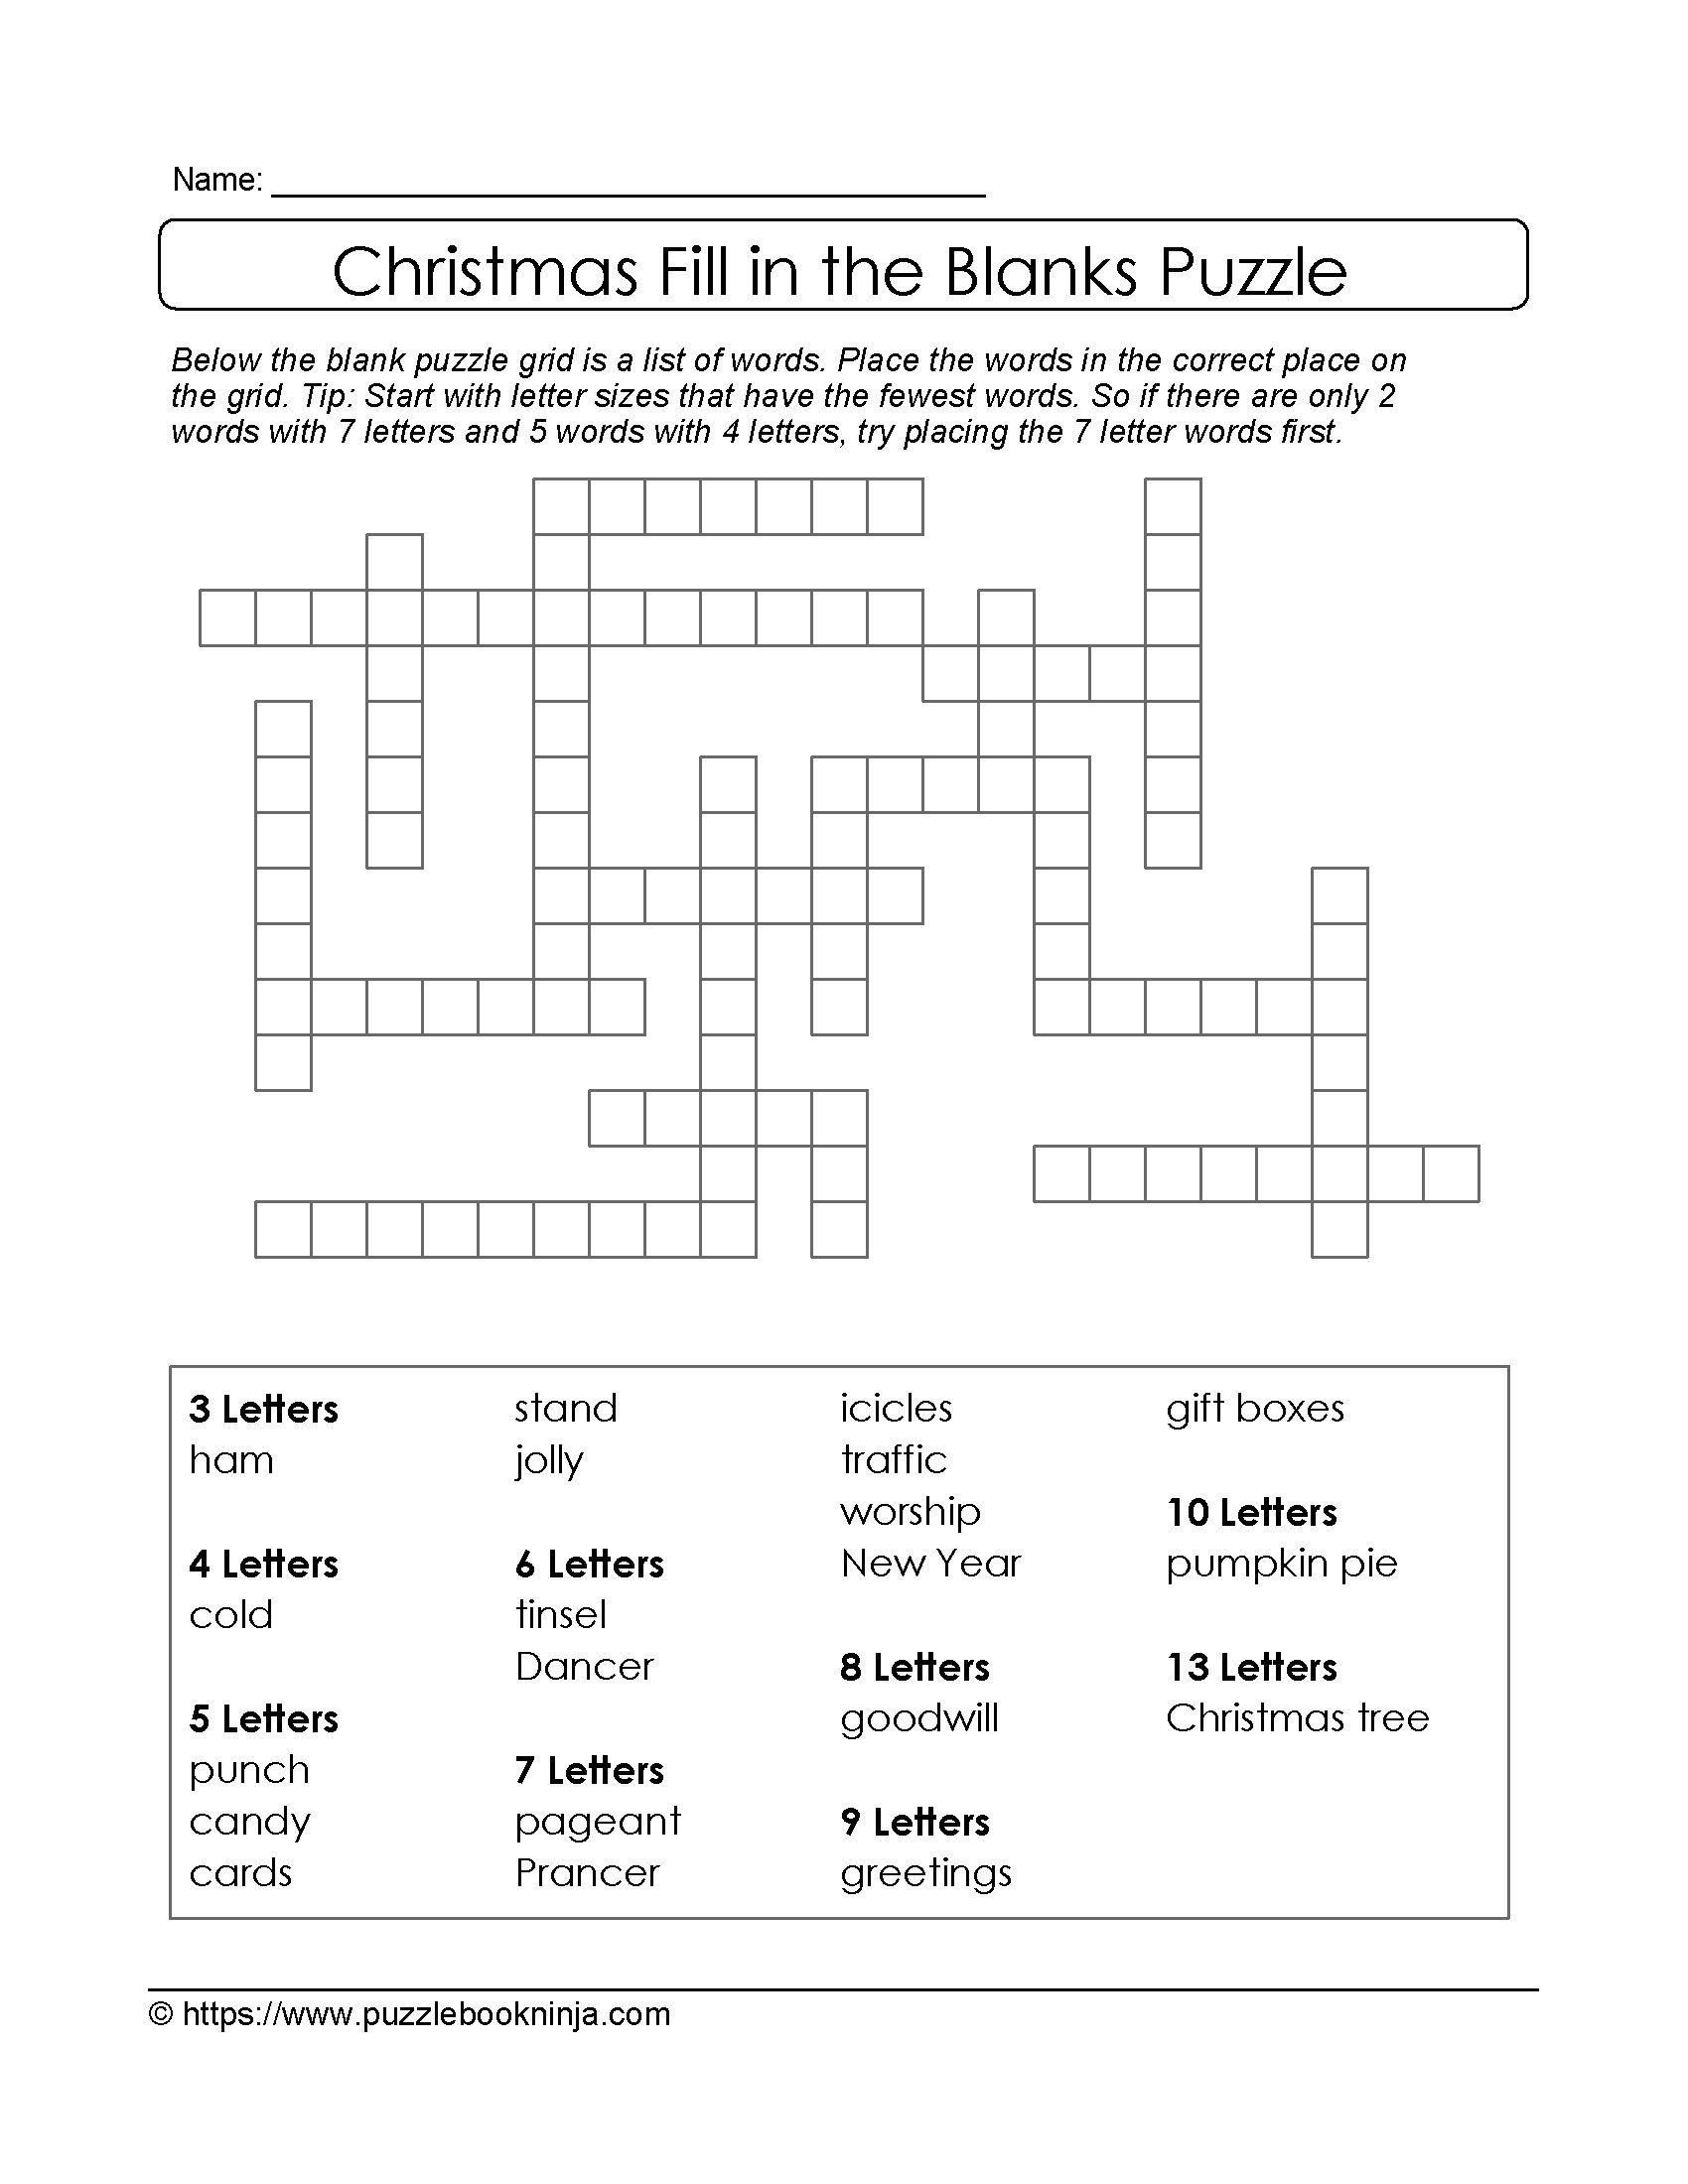 Freebie Xmas Puzzle To Print. Fill In The Blanks Crossword Like - Blank Crossword Puzzle Printable